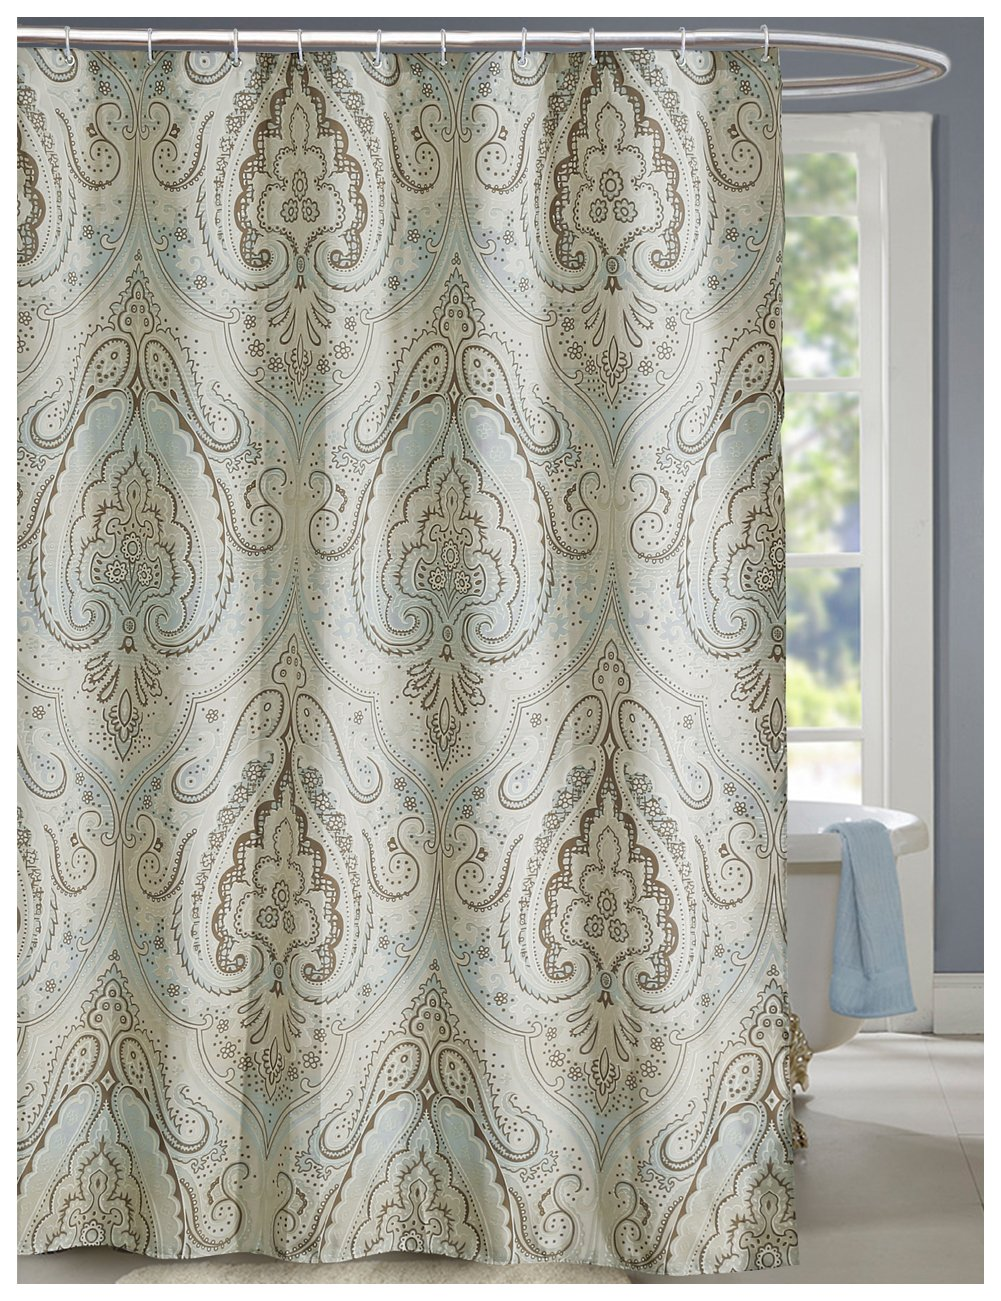 Amazoncom LanMeng Fabric Shower Curtain Classic Paisley Design - Beige and gray shower curtain